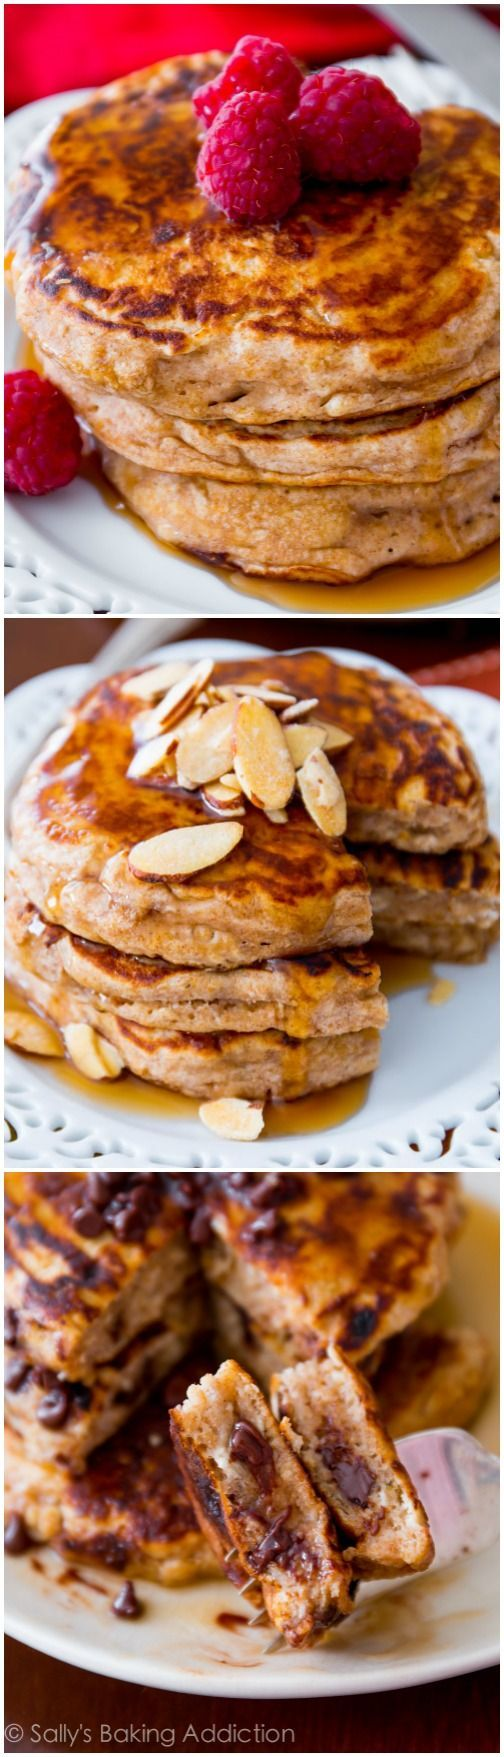 Furniture Designs: Whole Wheat Oatmeal Pancakes. - Sallys Baking Addi...